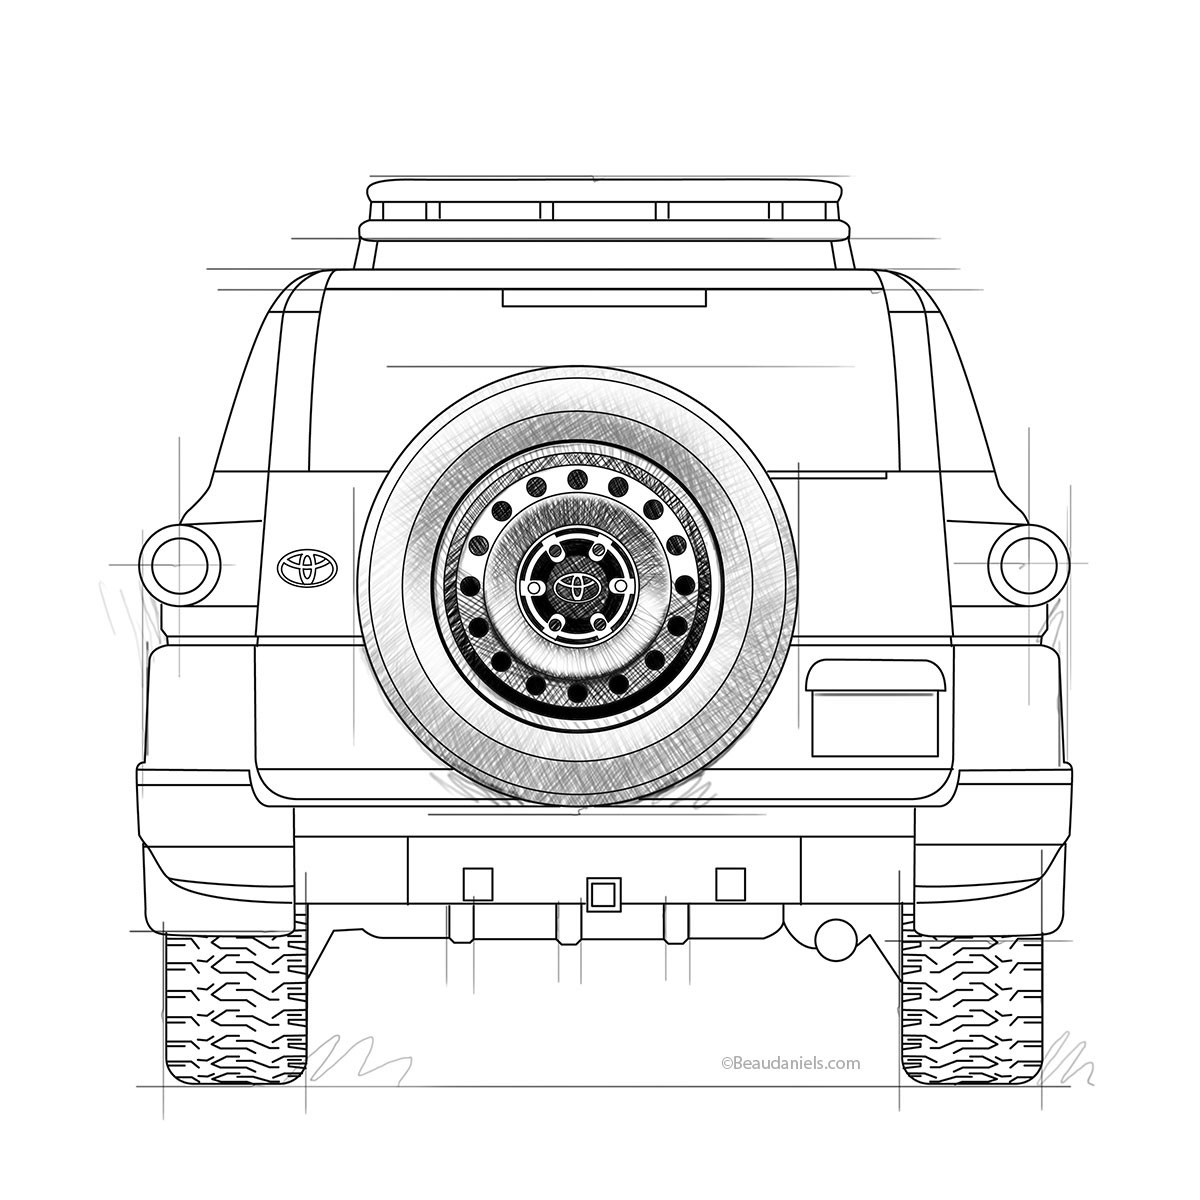 Toyota FJ Cruiser project. on Behance